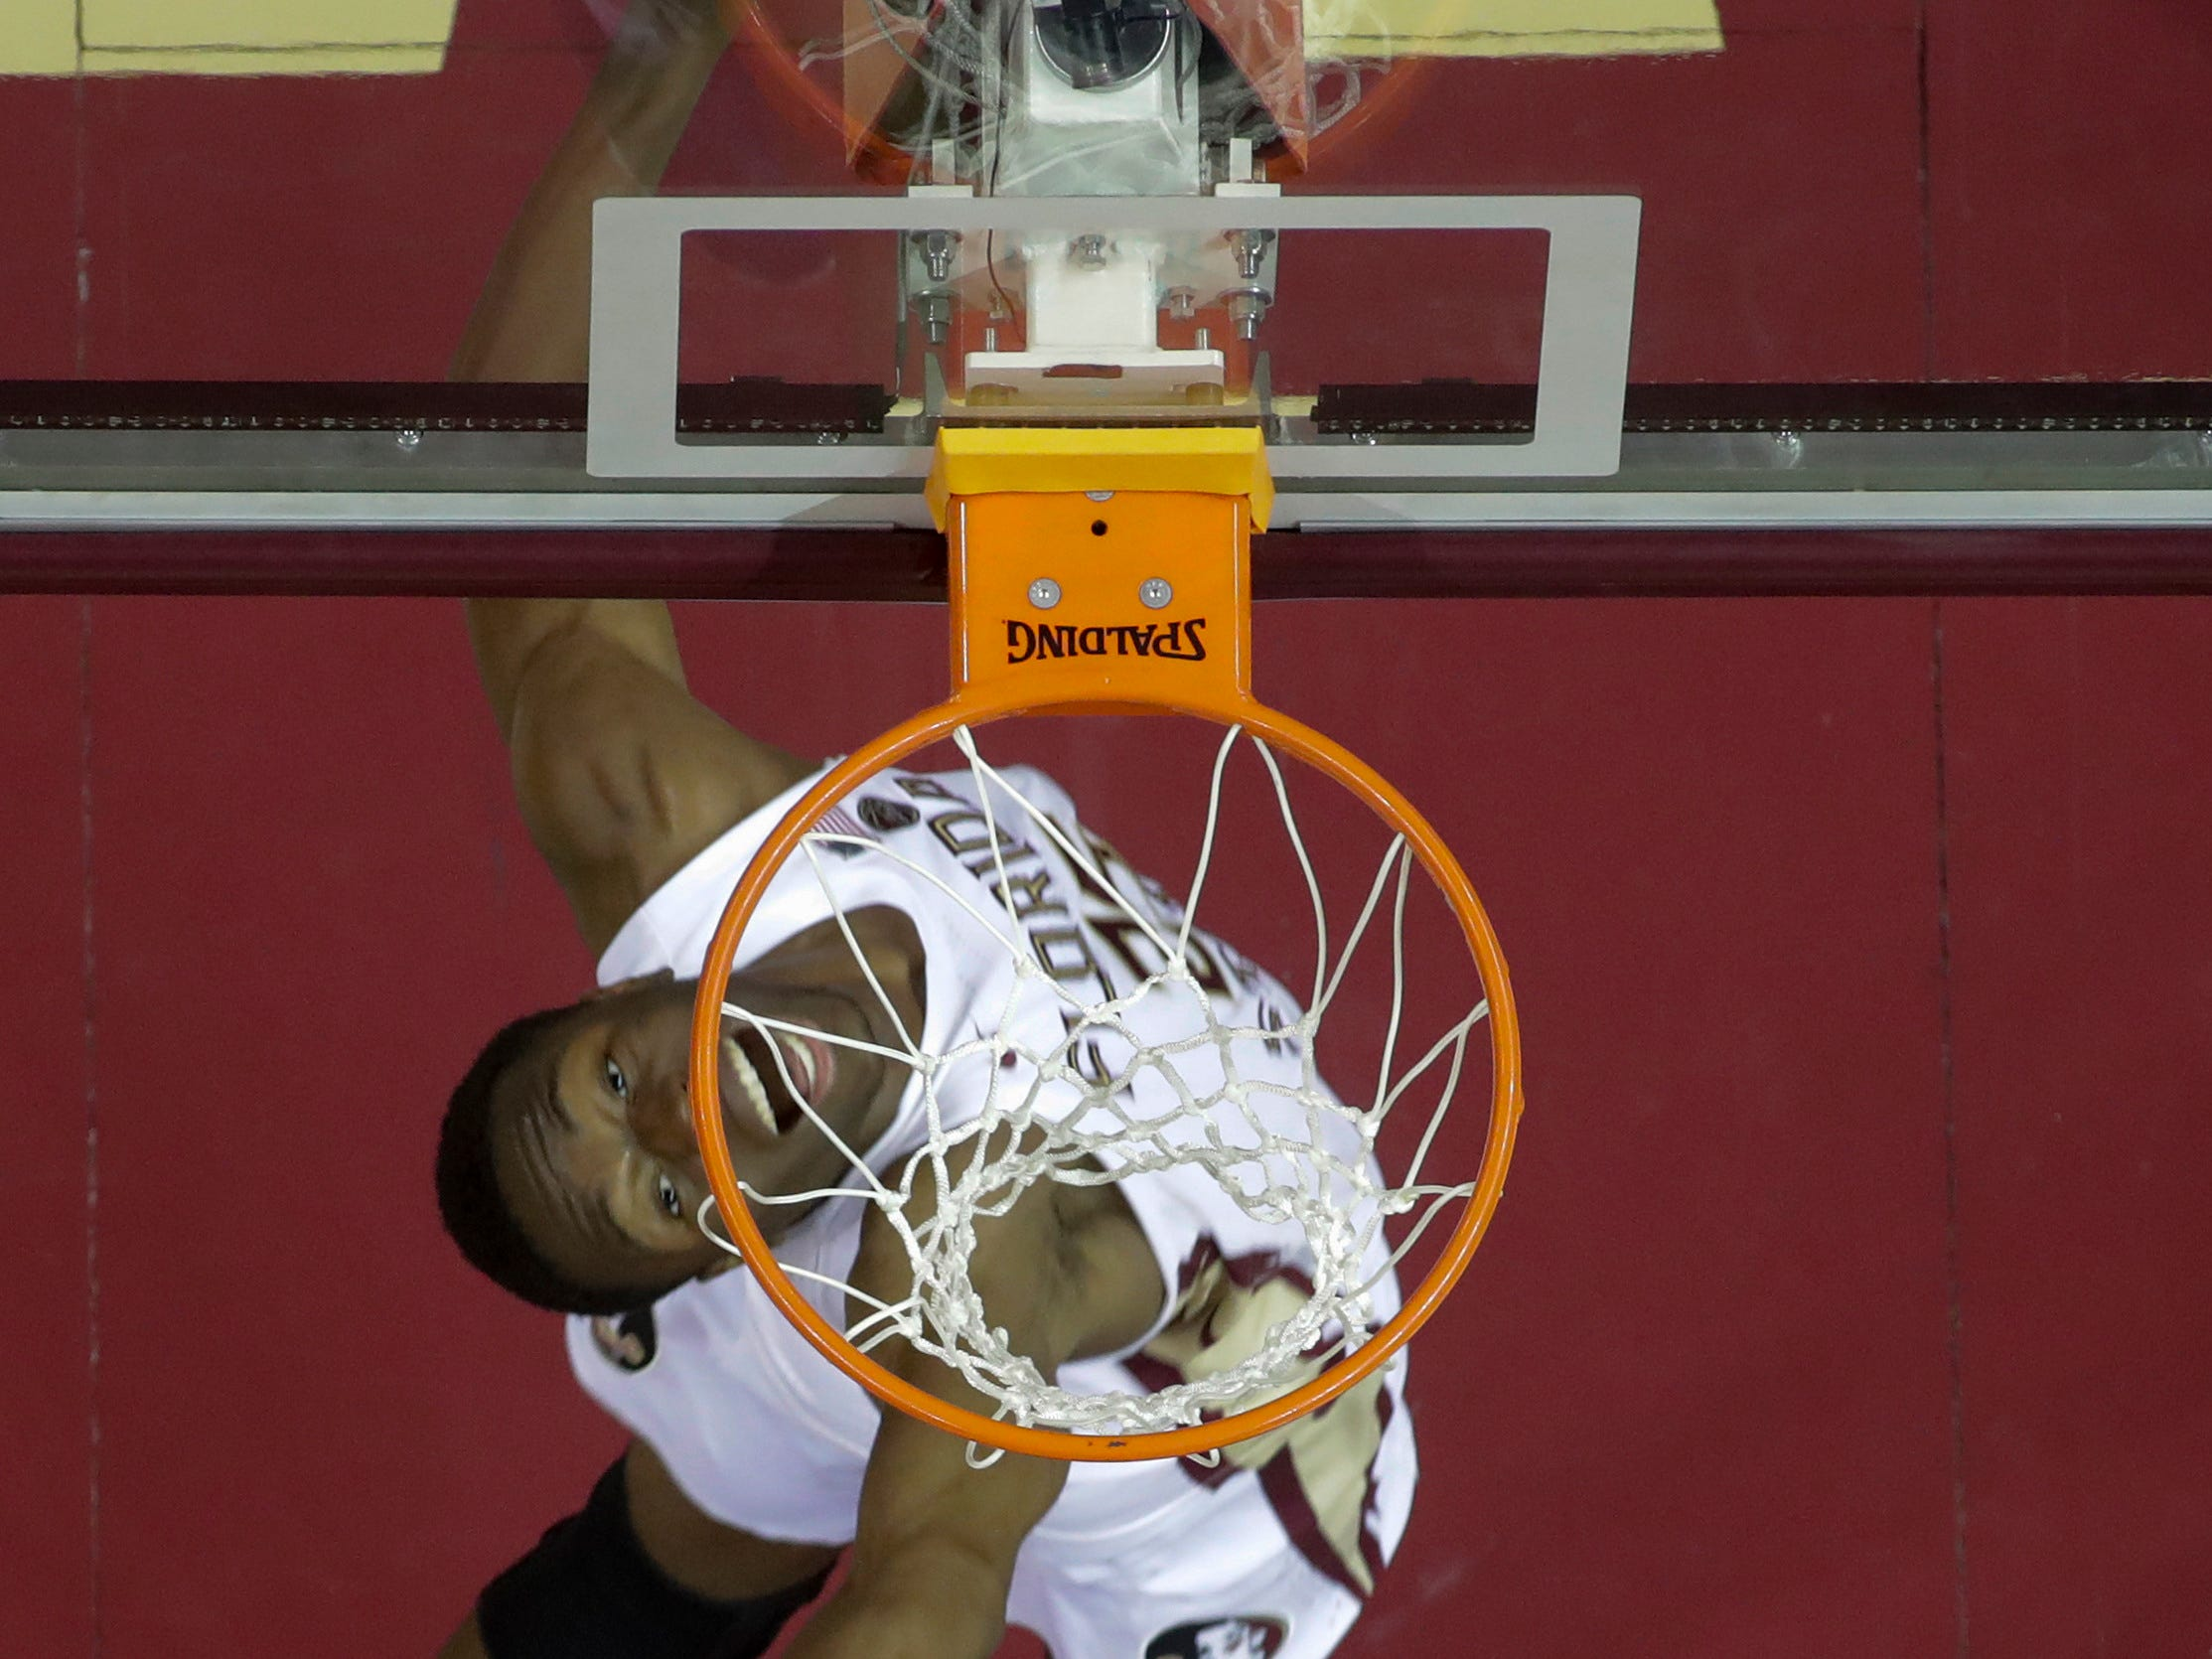 Florida State Seminoles forward Mfiondu Kabengele (25) reaches for the ball under the hoop during a game between Florida State University and the University of North Florida at Donald L. Tucker Civic Center in Tallahassee, Fla. Wednesday, Dec. 19, 2018.